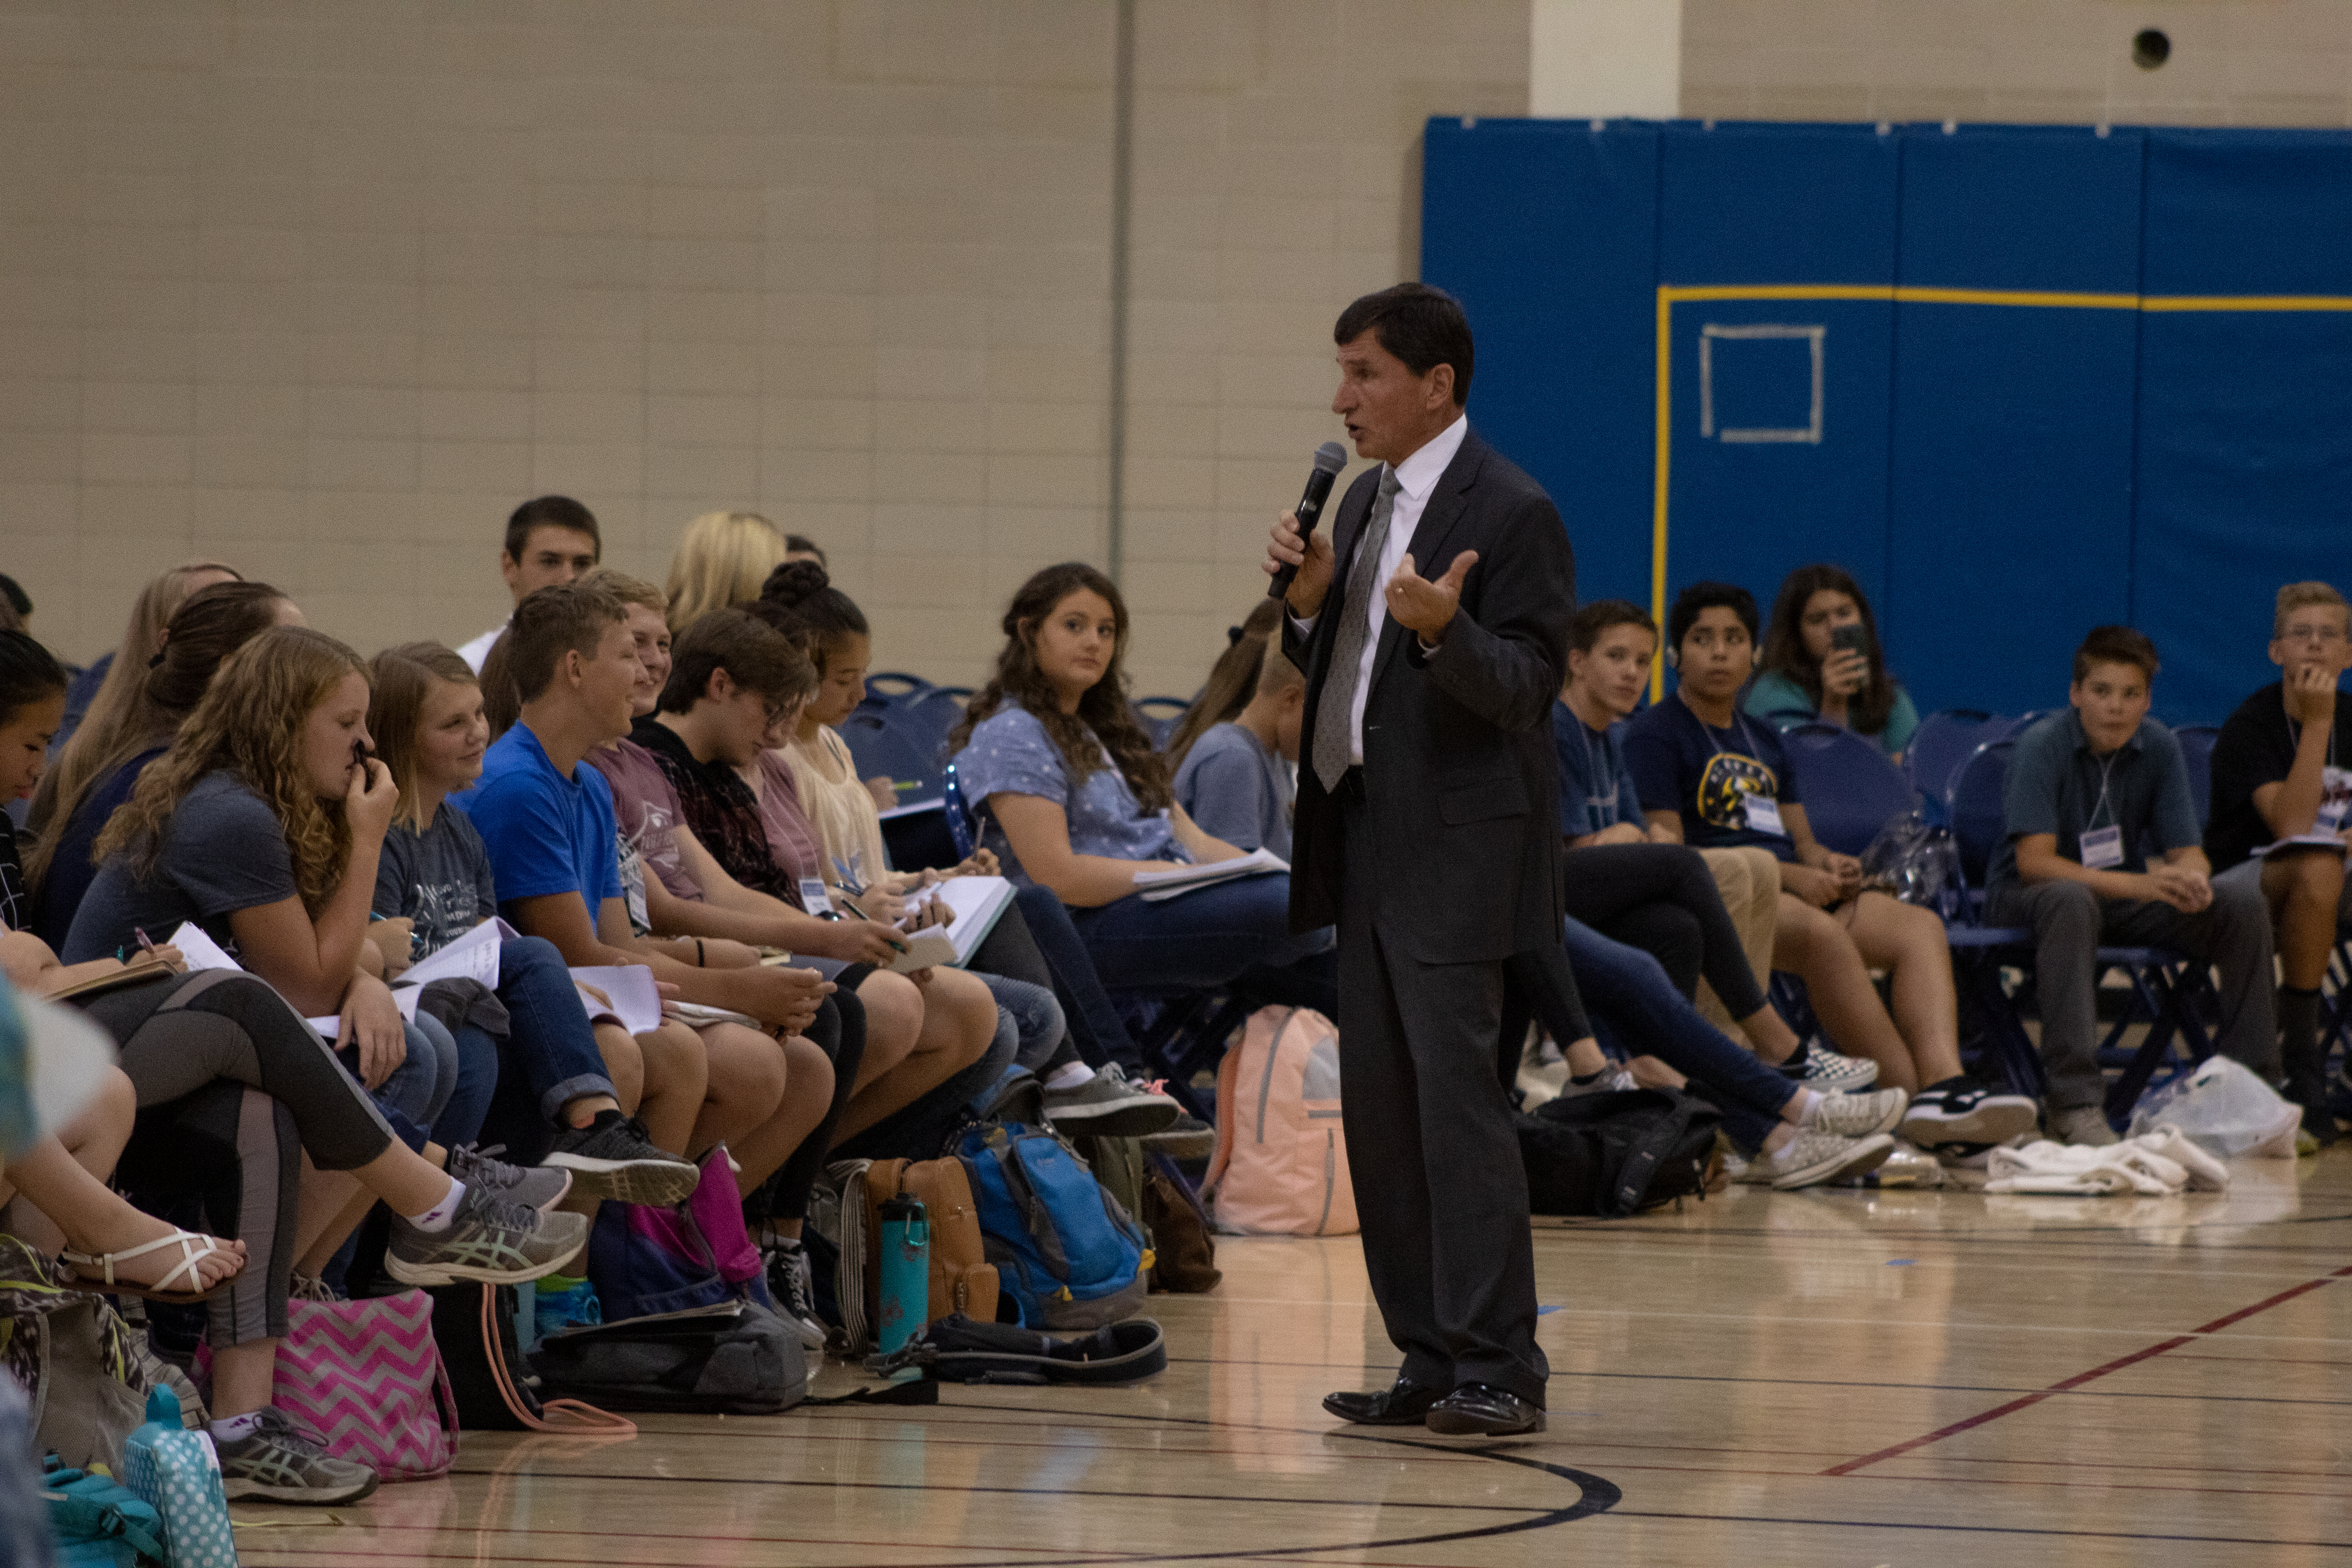 Scott L. Anderson instructs youth during Education Week at BYU.